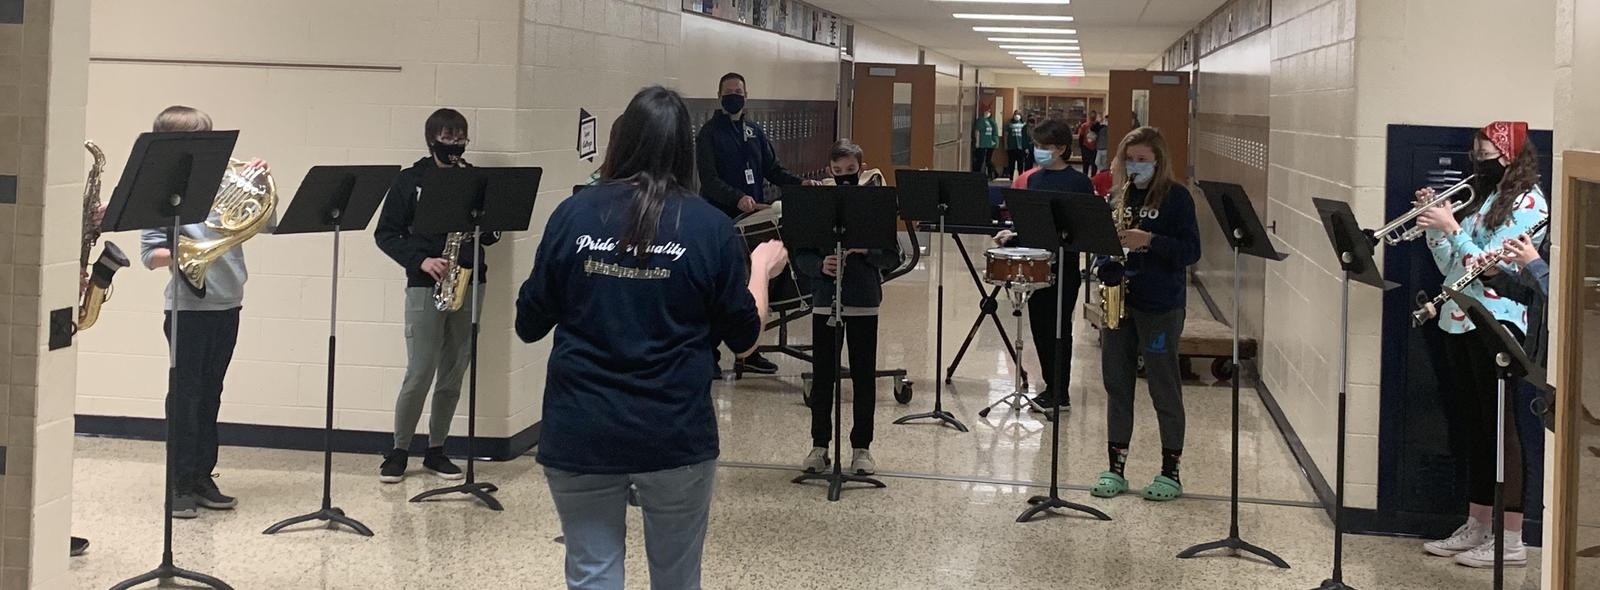 MS band performing in the hallway